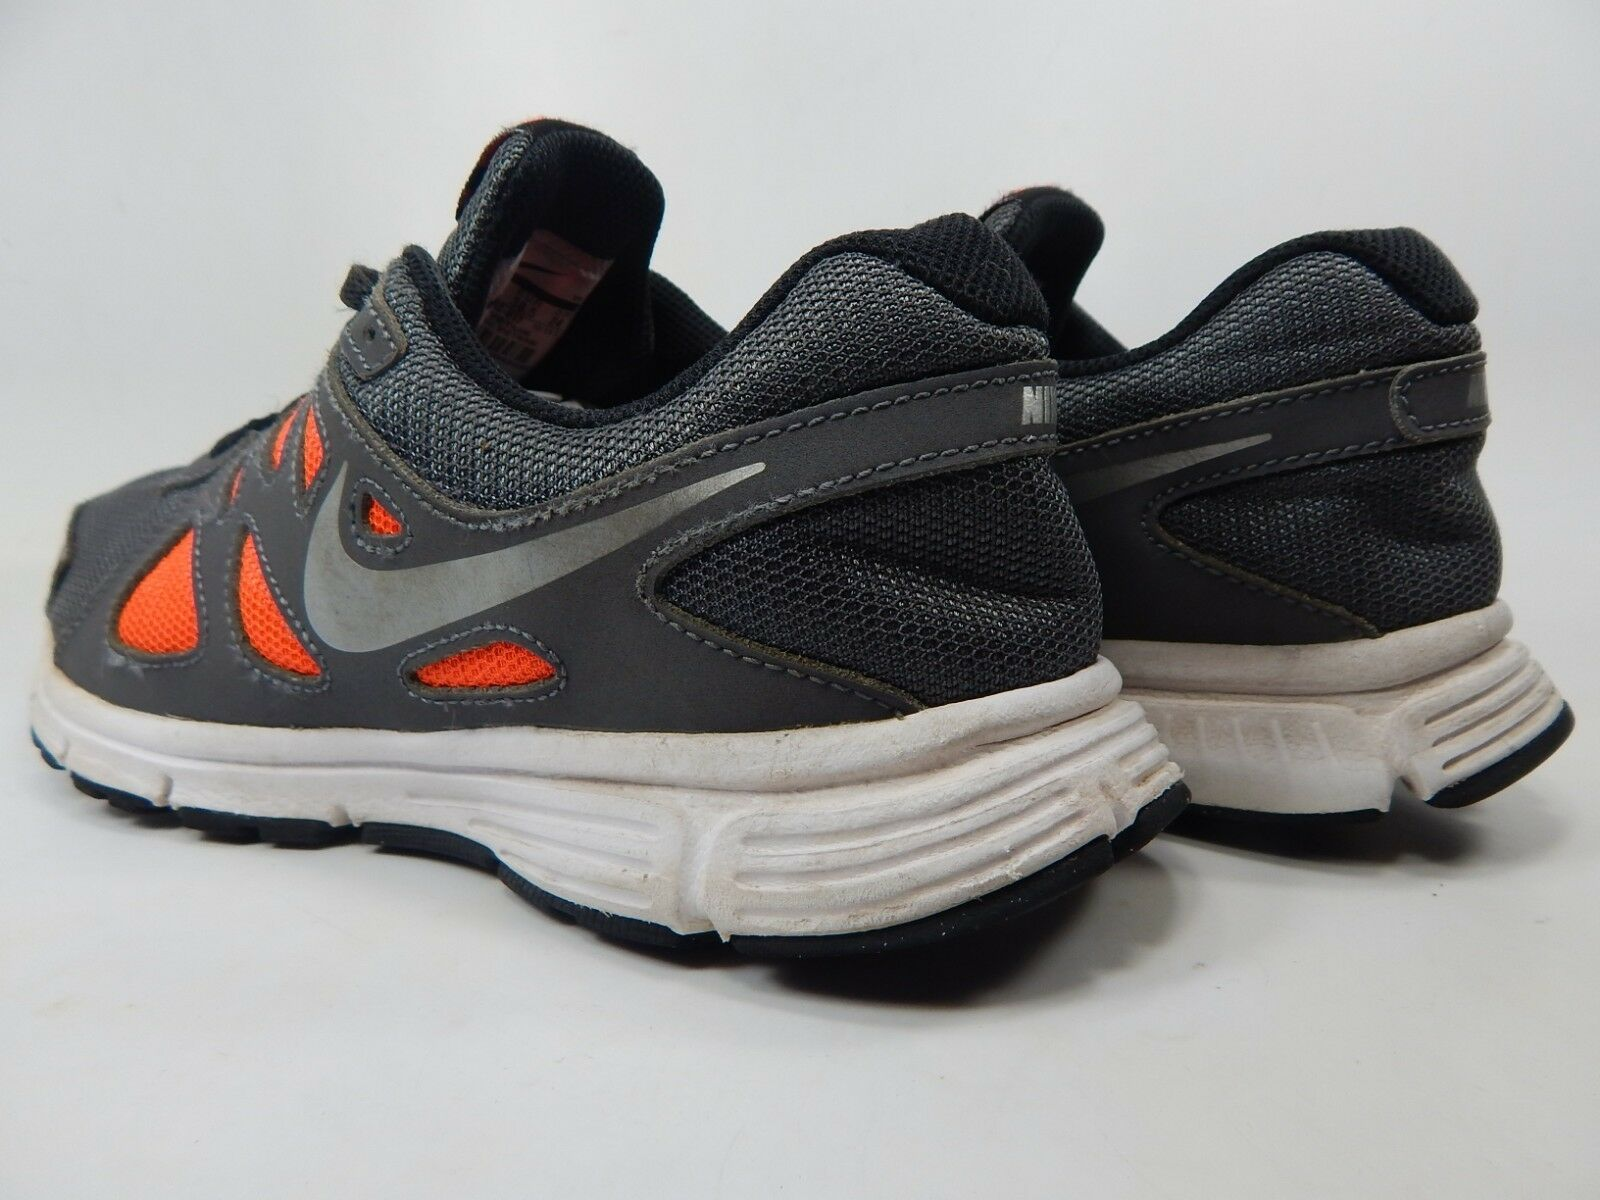 Nike Revolution 2 Size 6 M (Y) EU 38.5 Youth Kid's Running Shoes Gray 555082-017